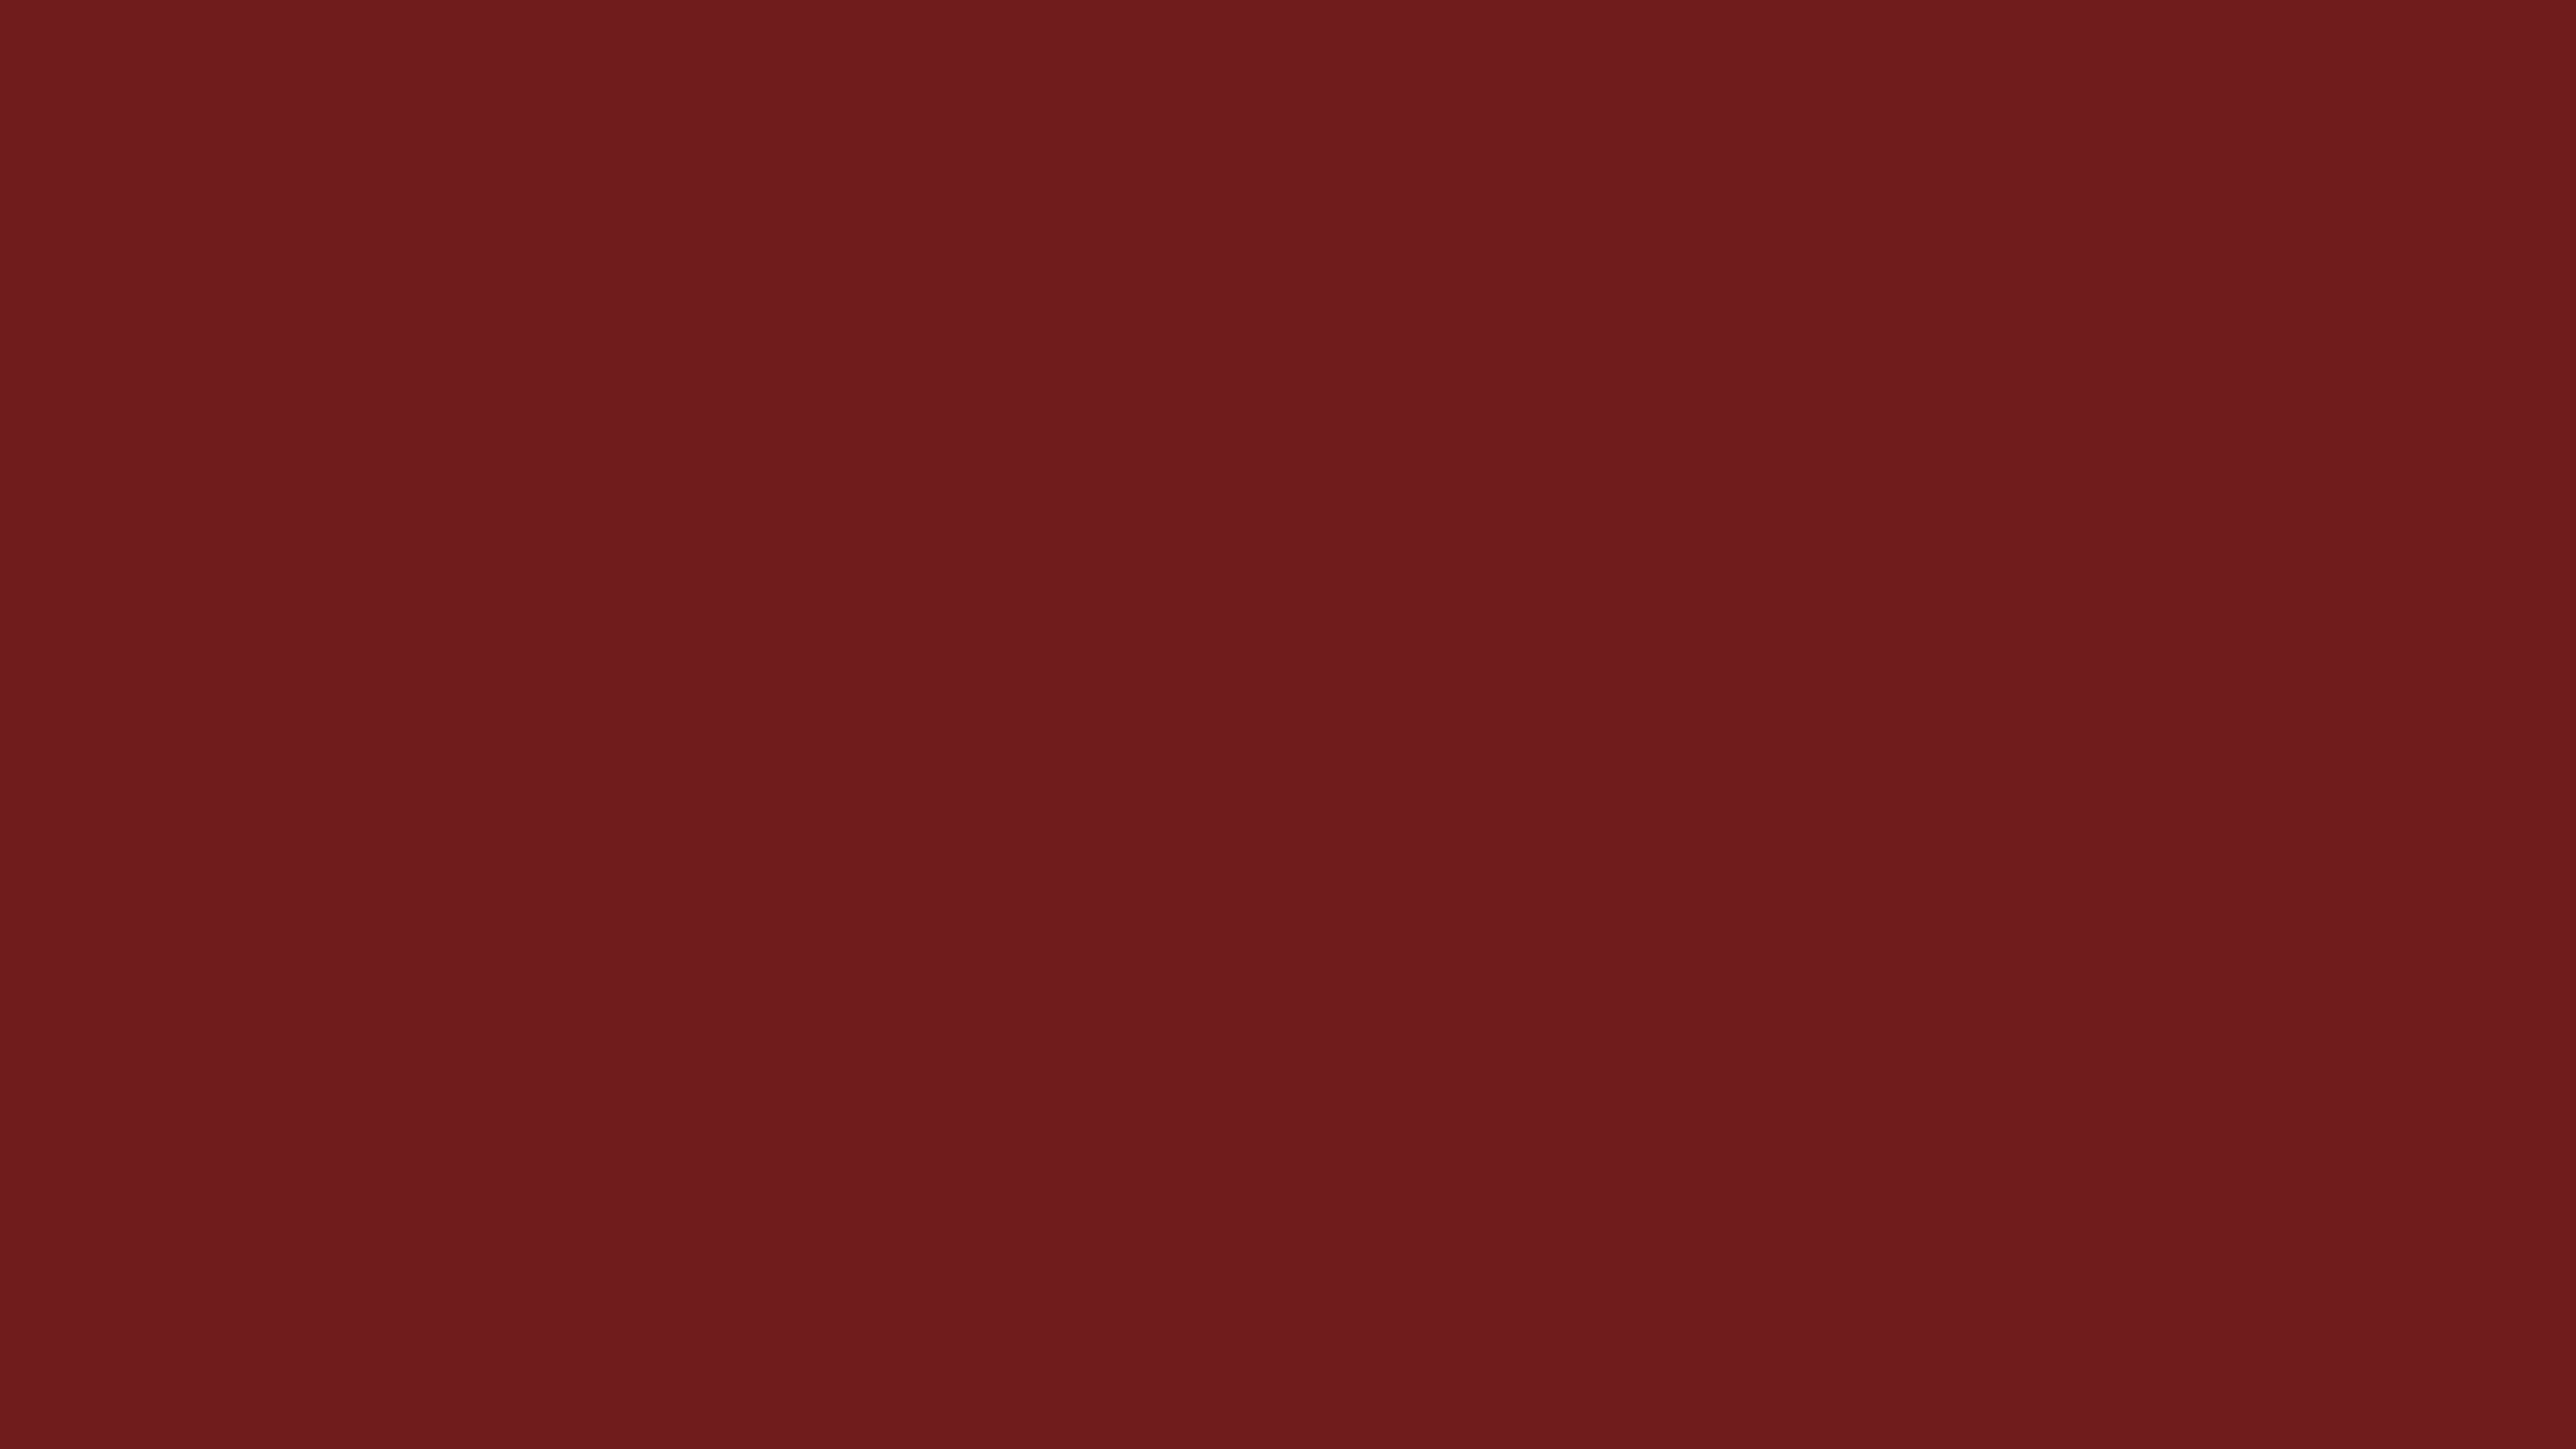 3840x2160 Prune Solid Color Background